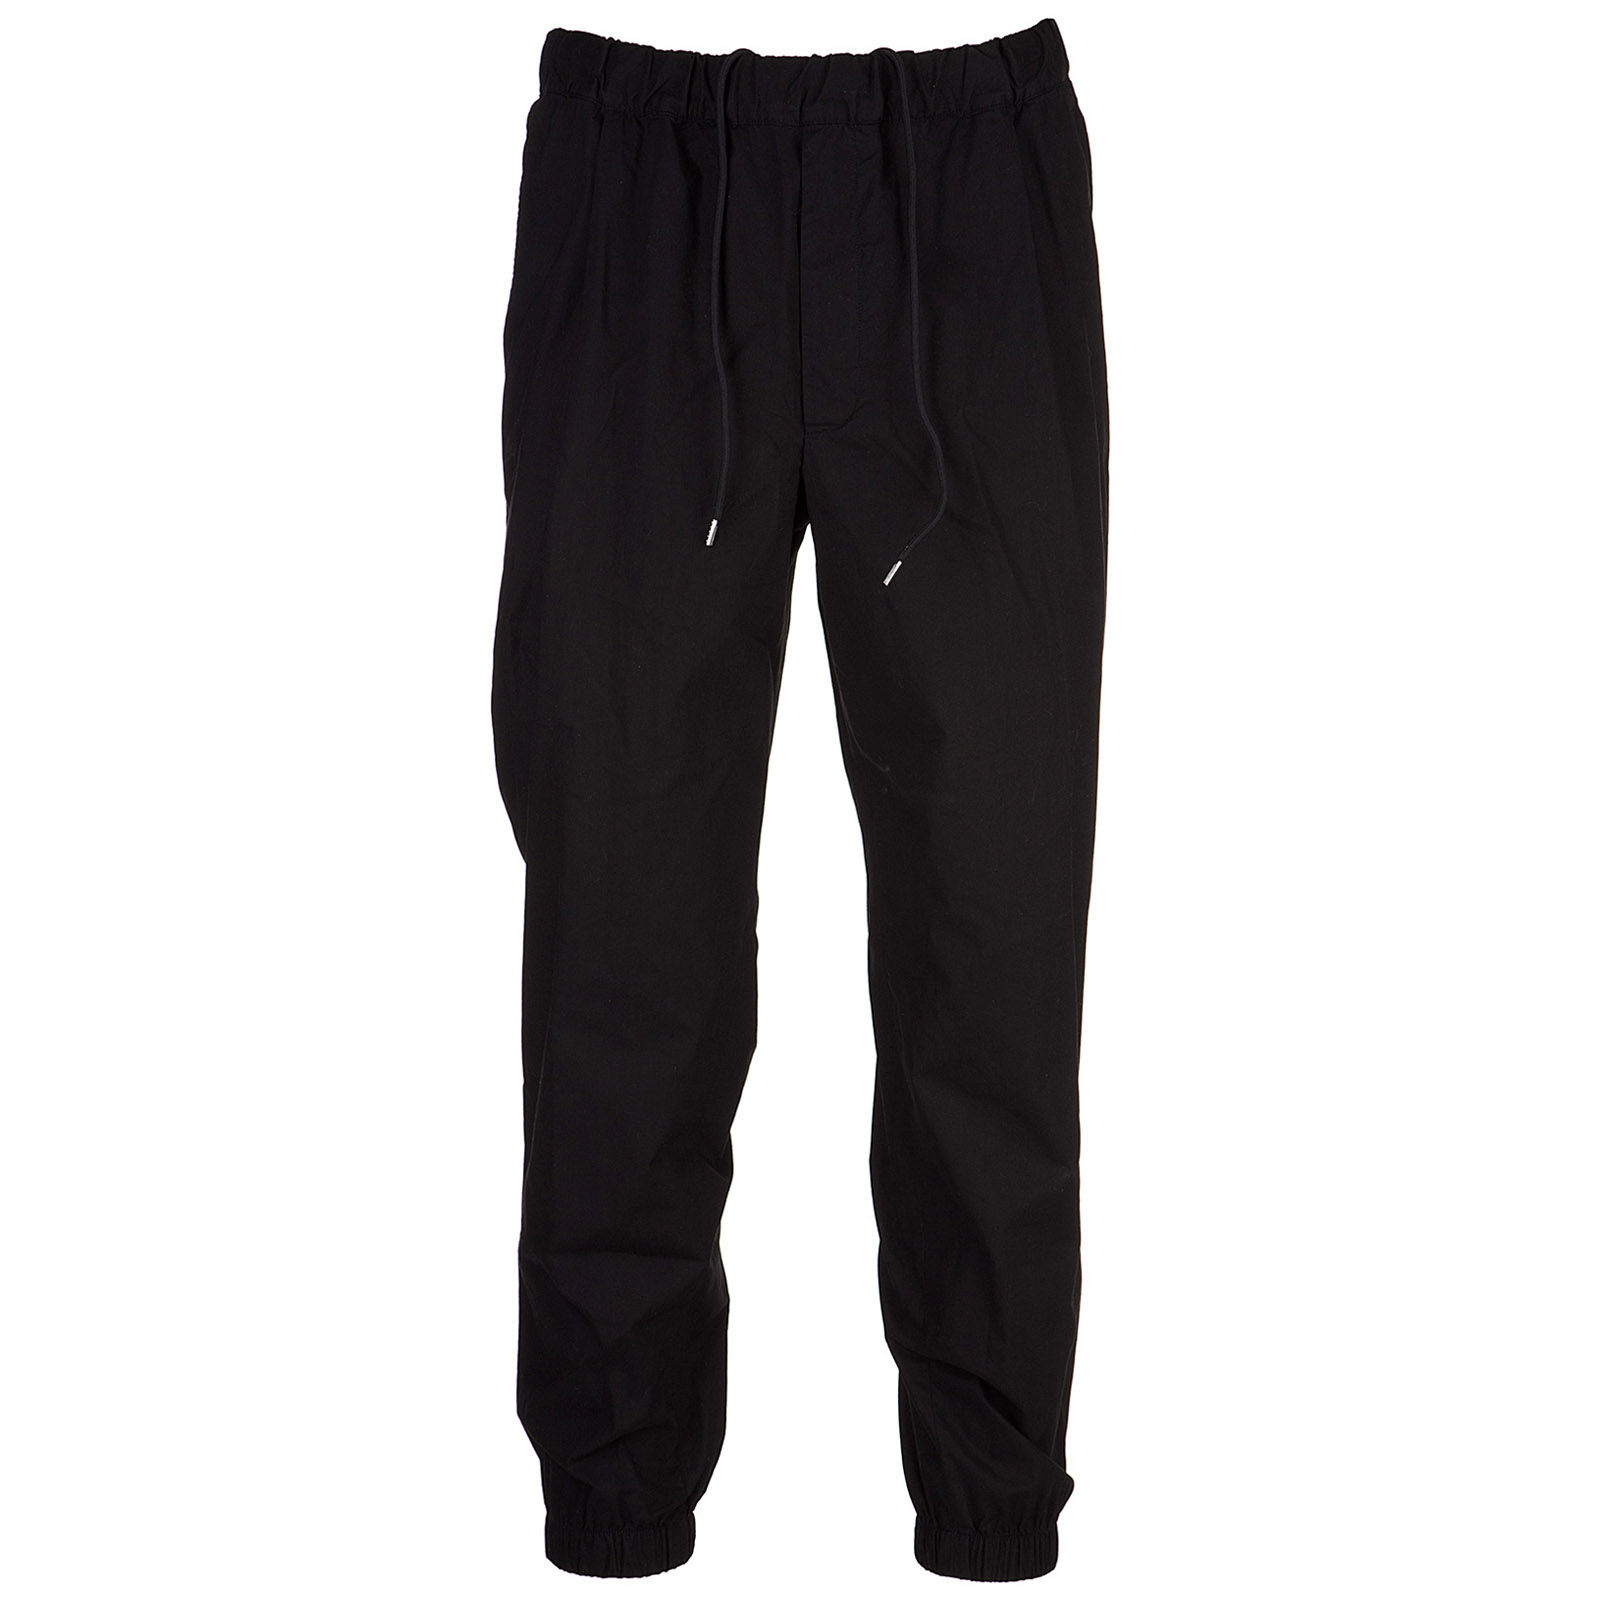 Men's trousers pants chino trackpant